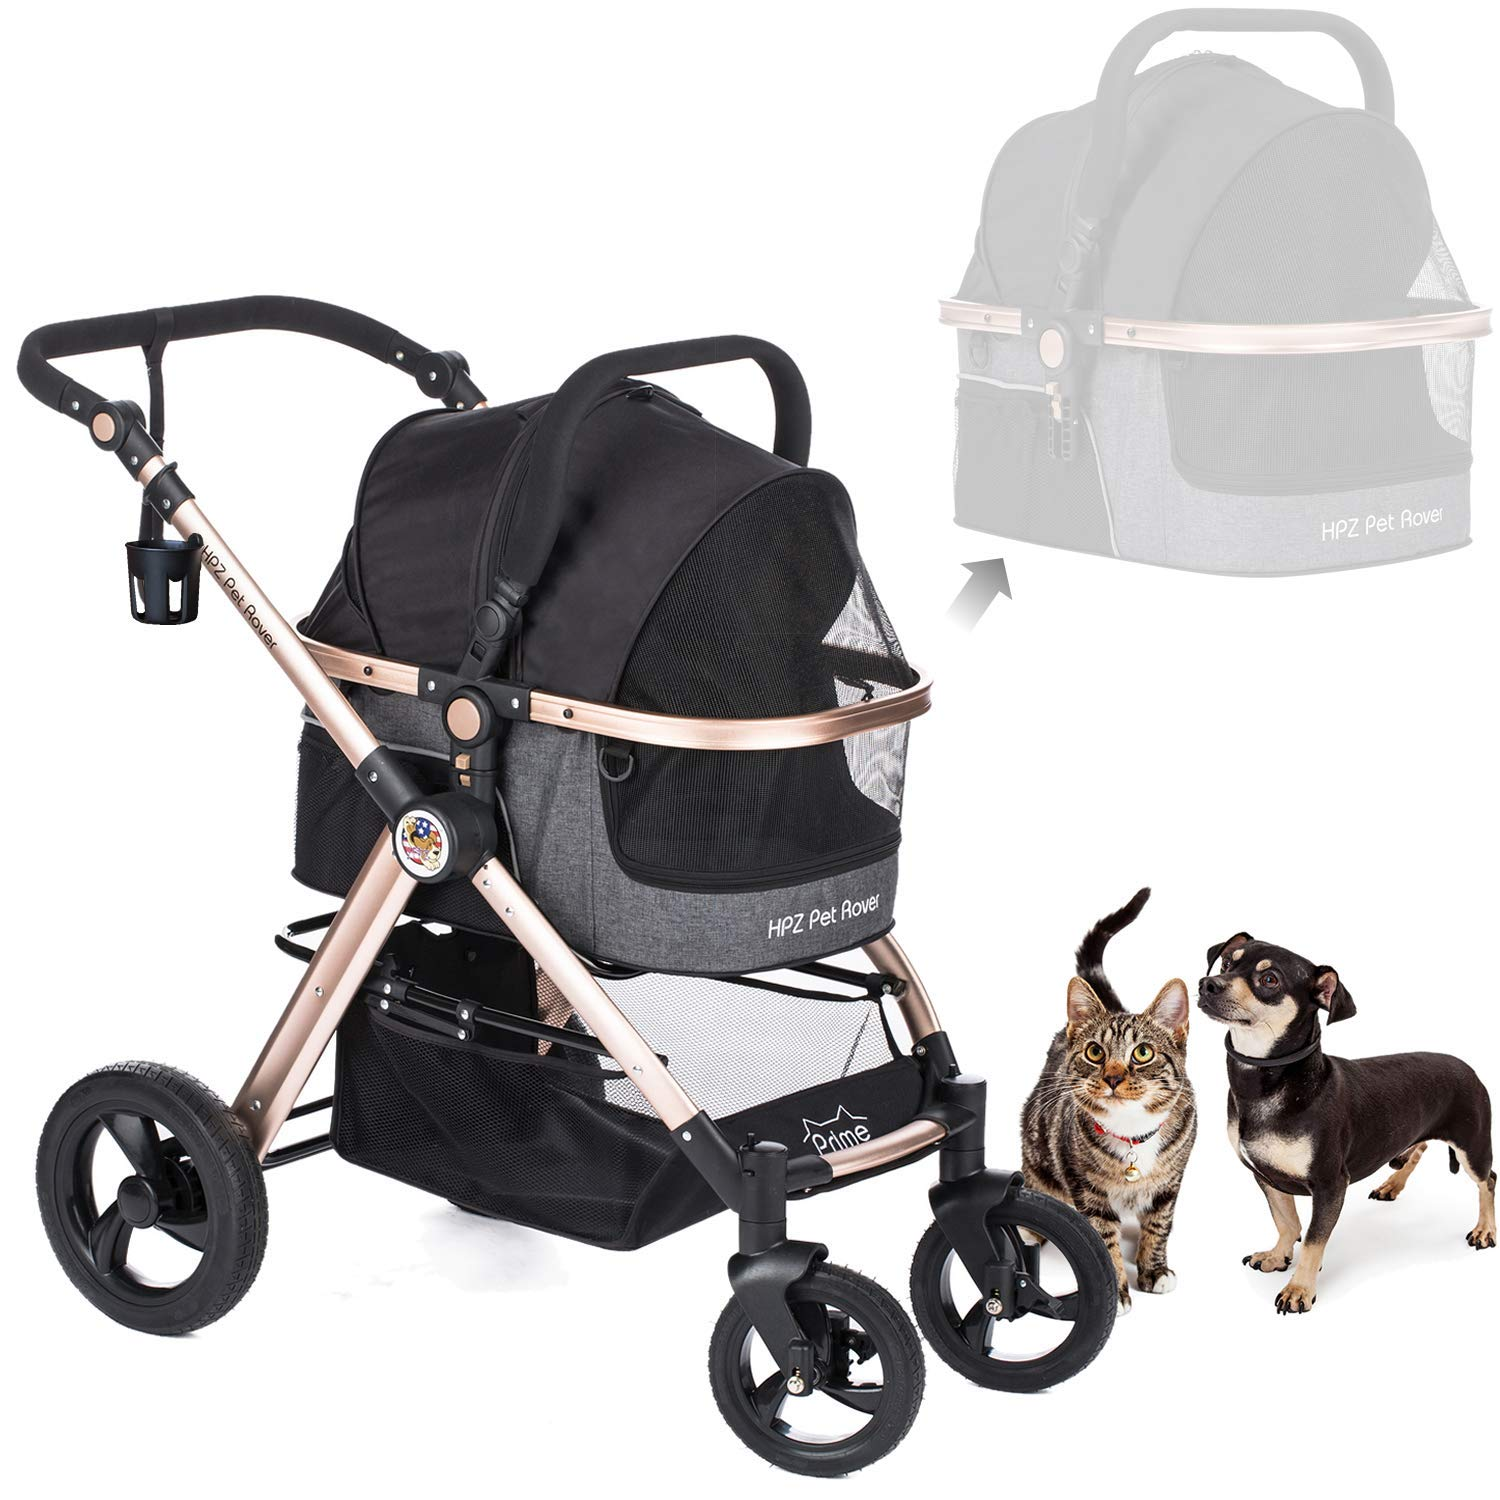 HPZ Pet Rover Prime 3-in-1 Luxury Dog/Cat/Pet Stroller (Travel Carrier + Car Seat +Stroller) with Detach Carrier/Pump-Free Rubber Tires/Aluminum Frame/Reversible Handle for Medium & Small Pets (BLACK) by HPZ-PR America